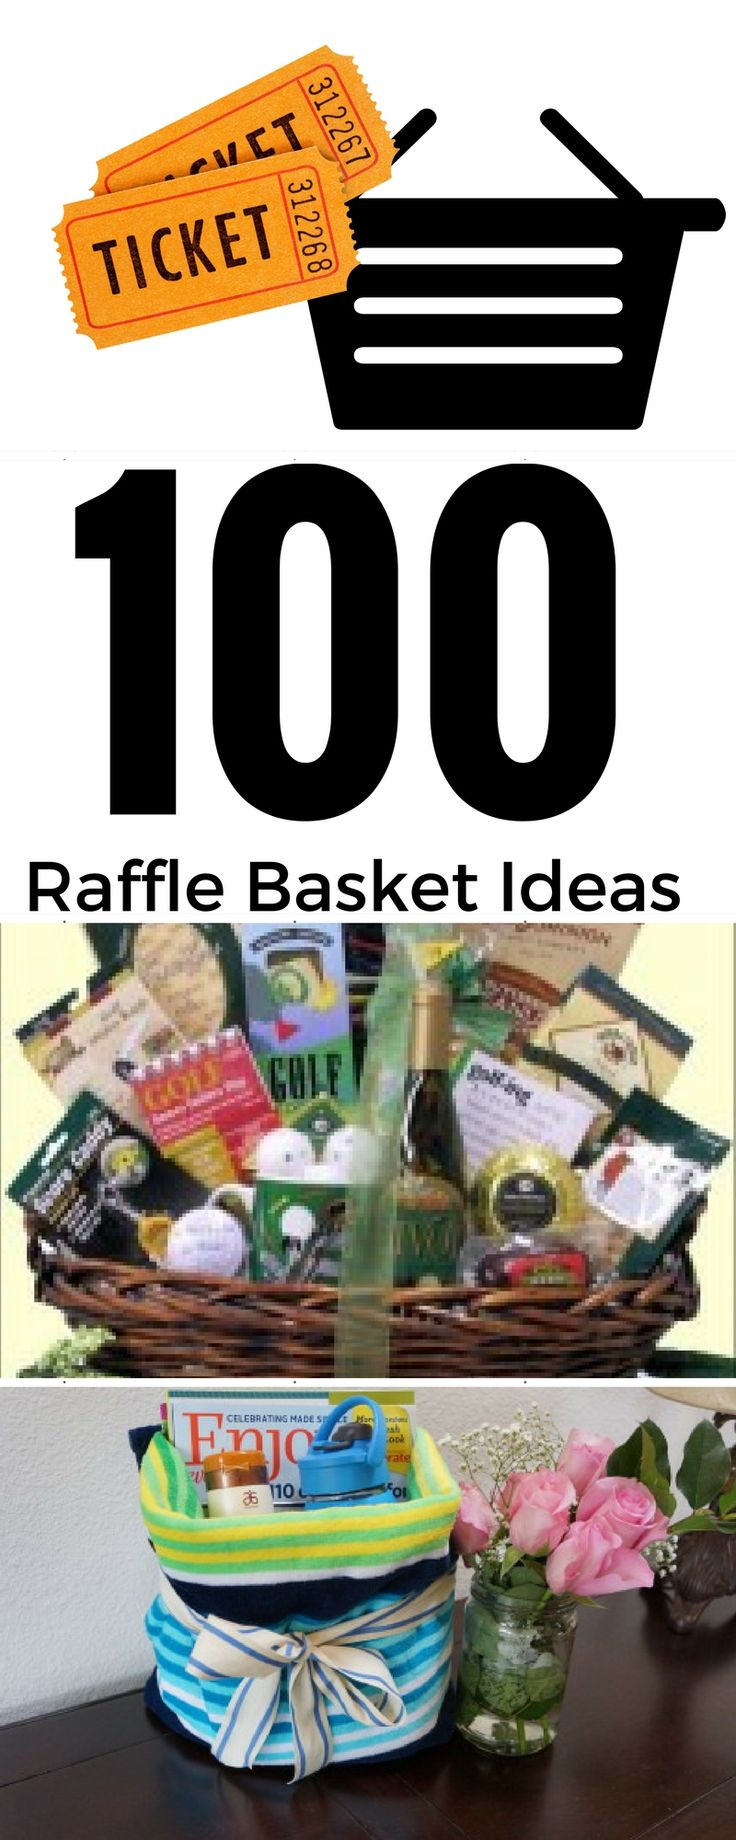 100 Fall Festival Raffle Basket Ideas - The Auction Basket List. Good ideas on this list like a quilt with Little House on the Prairie books.